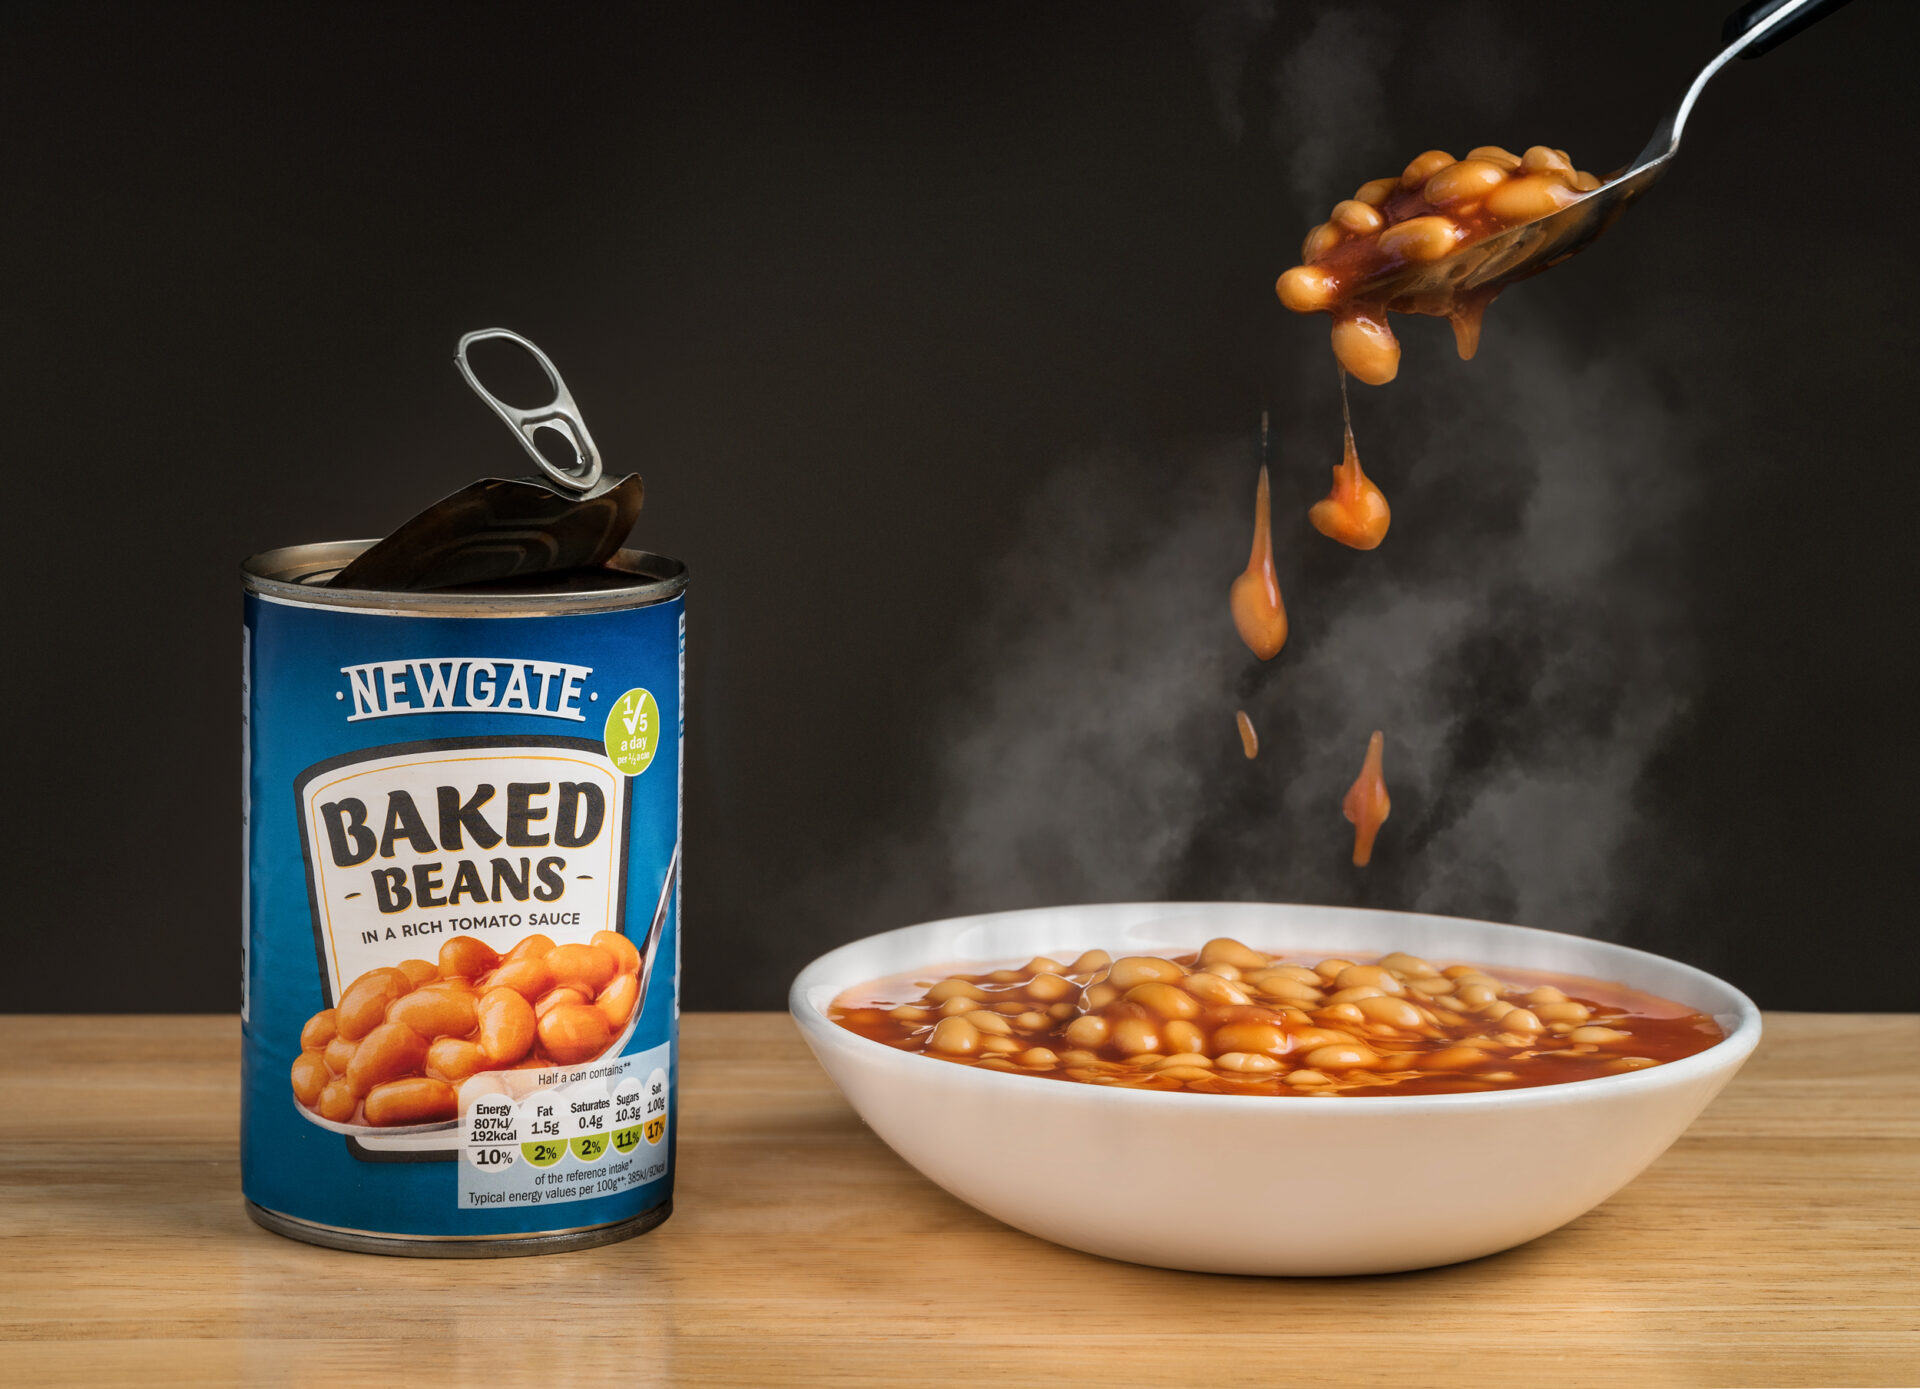 newgate baked beans